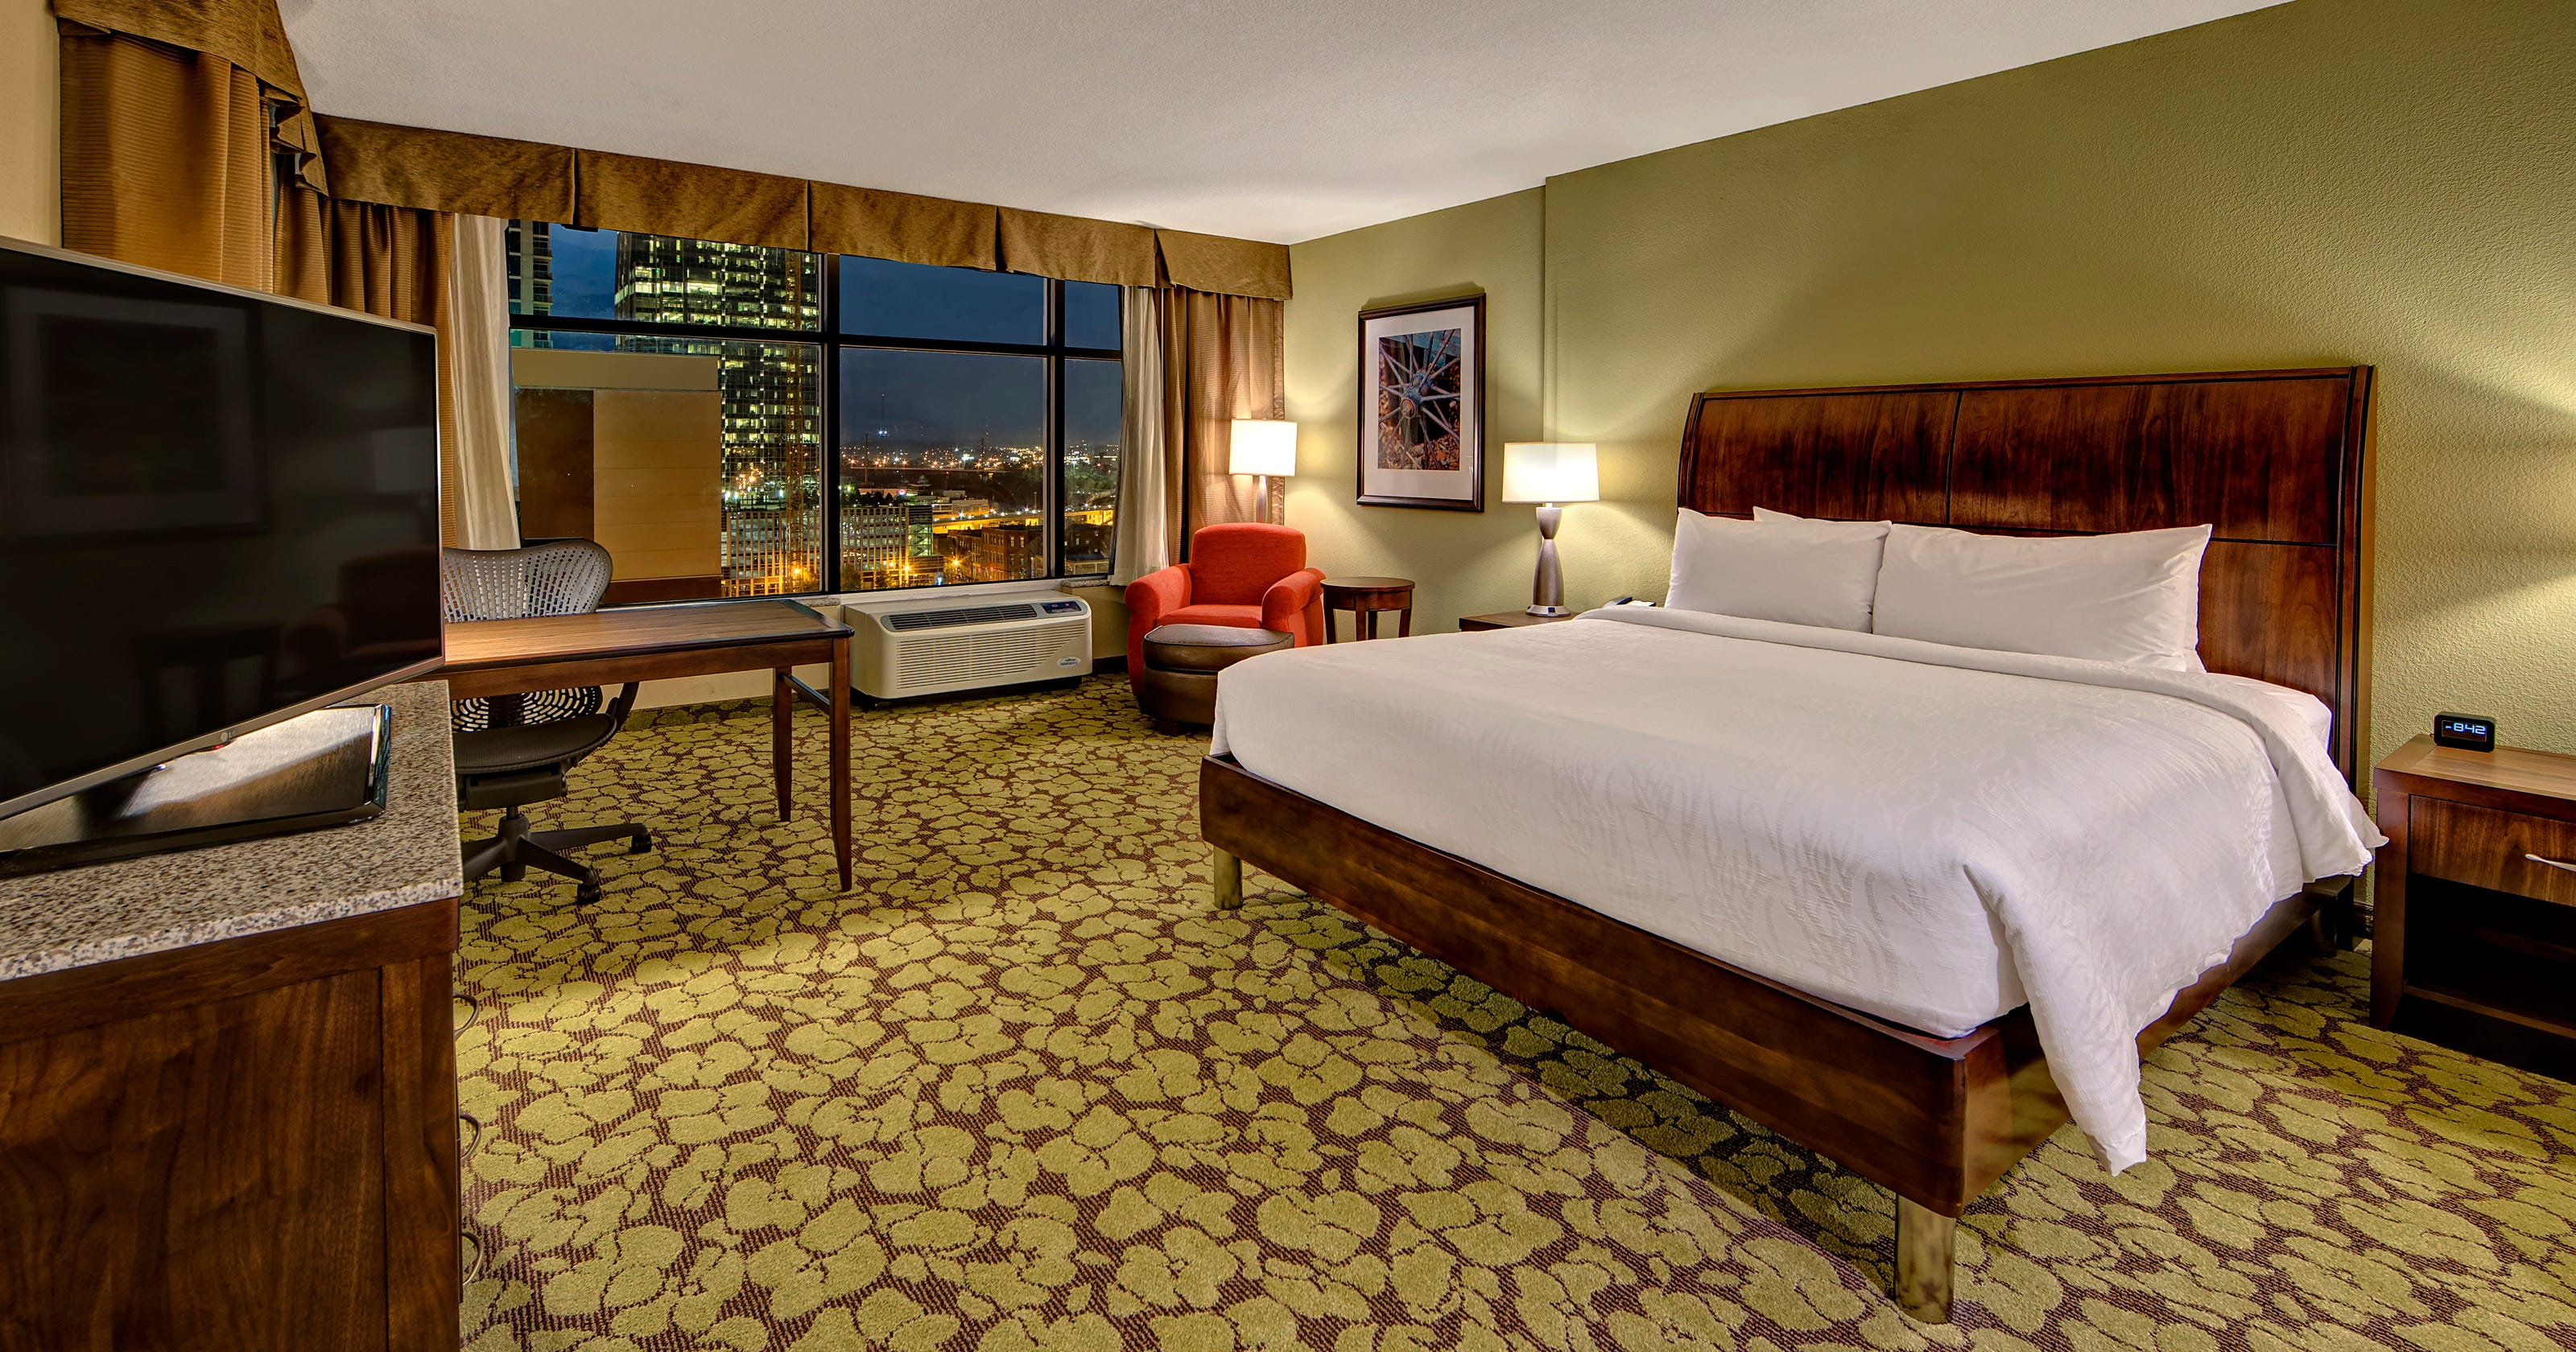 Favorite mid-scale hotels: Top picks from our travel panel